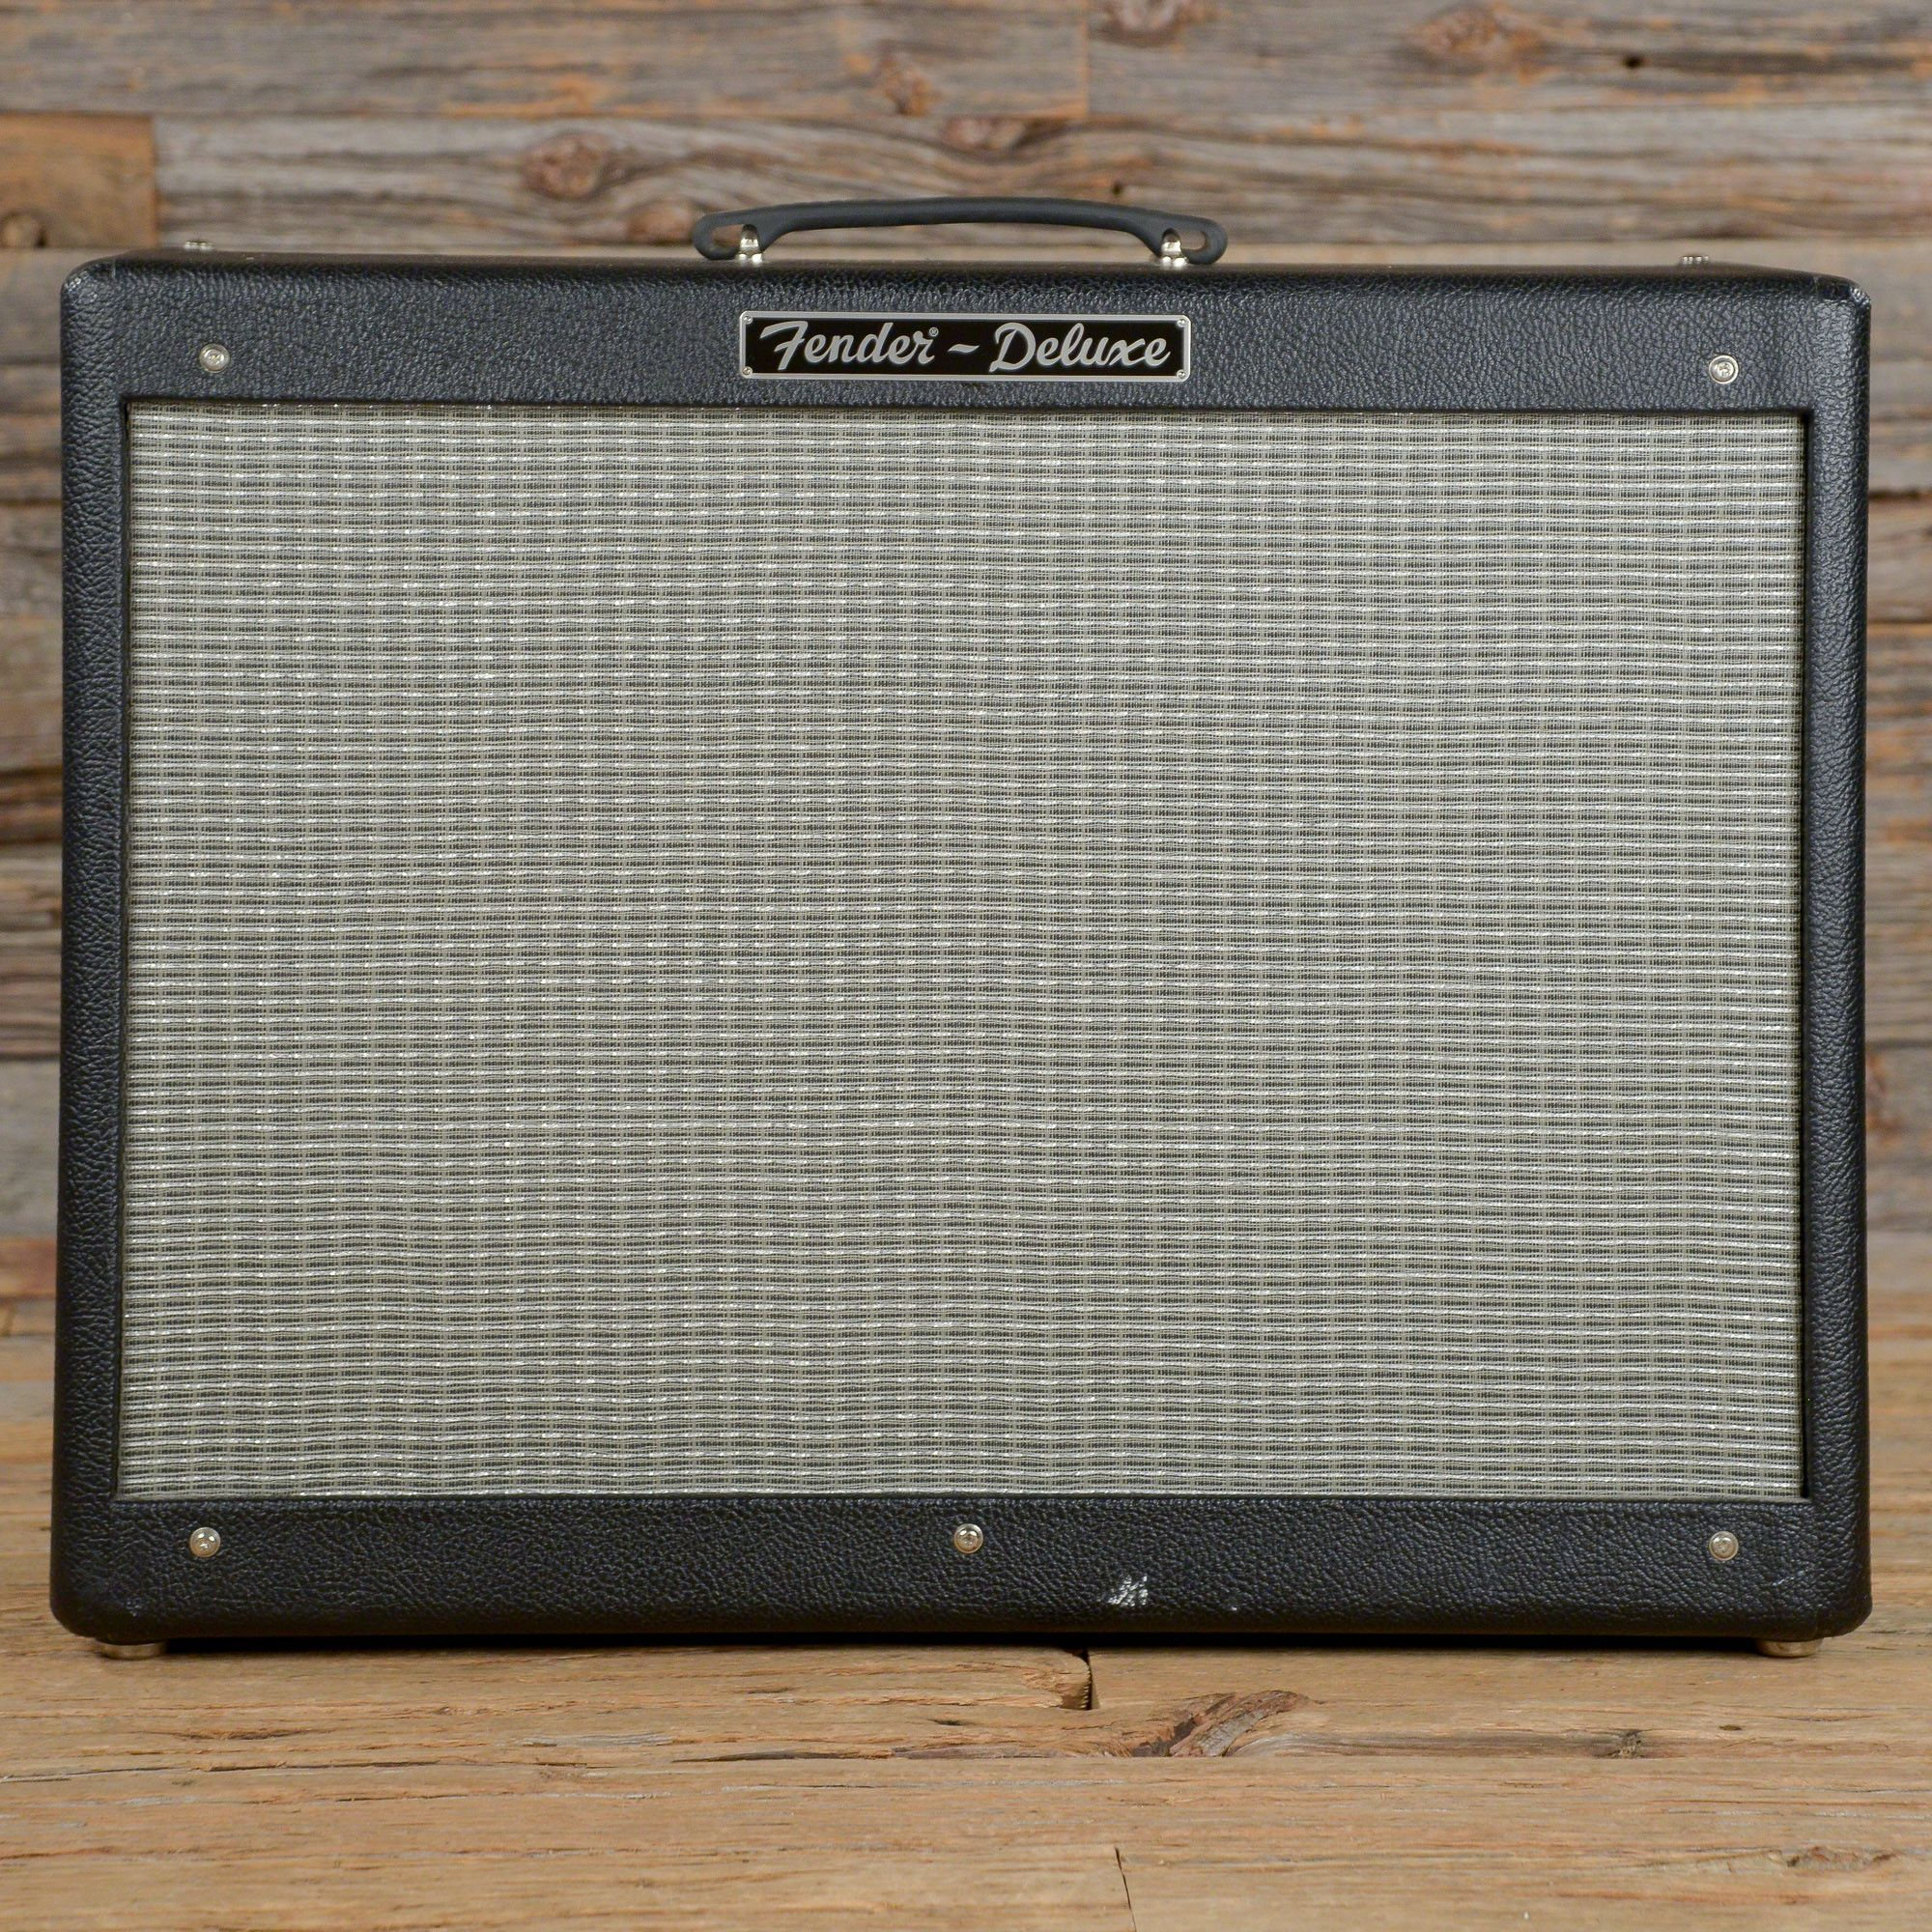 Fender Hot Rod Deluxe 1x12 Combo USED | Products | Pinterest ...